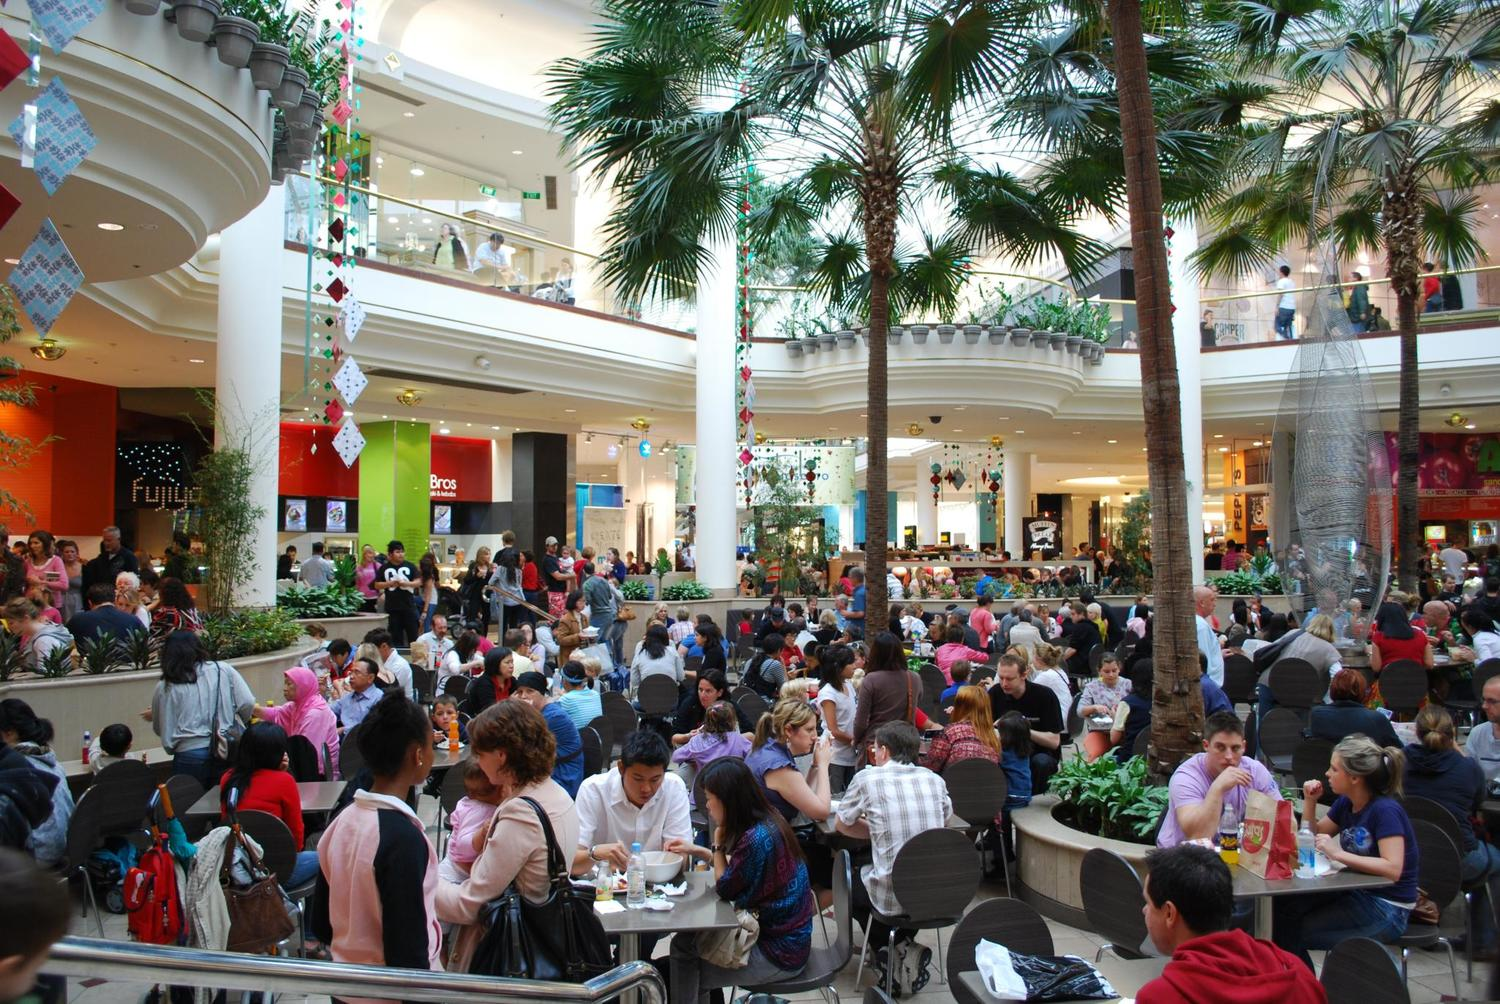 Image result for mall food court crowded